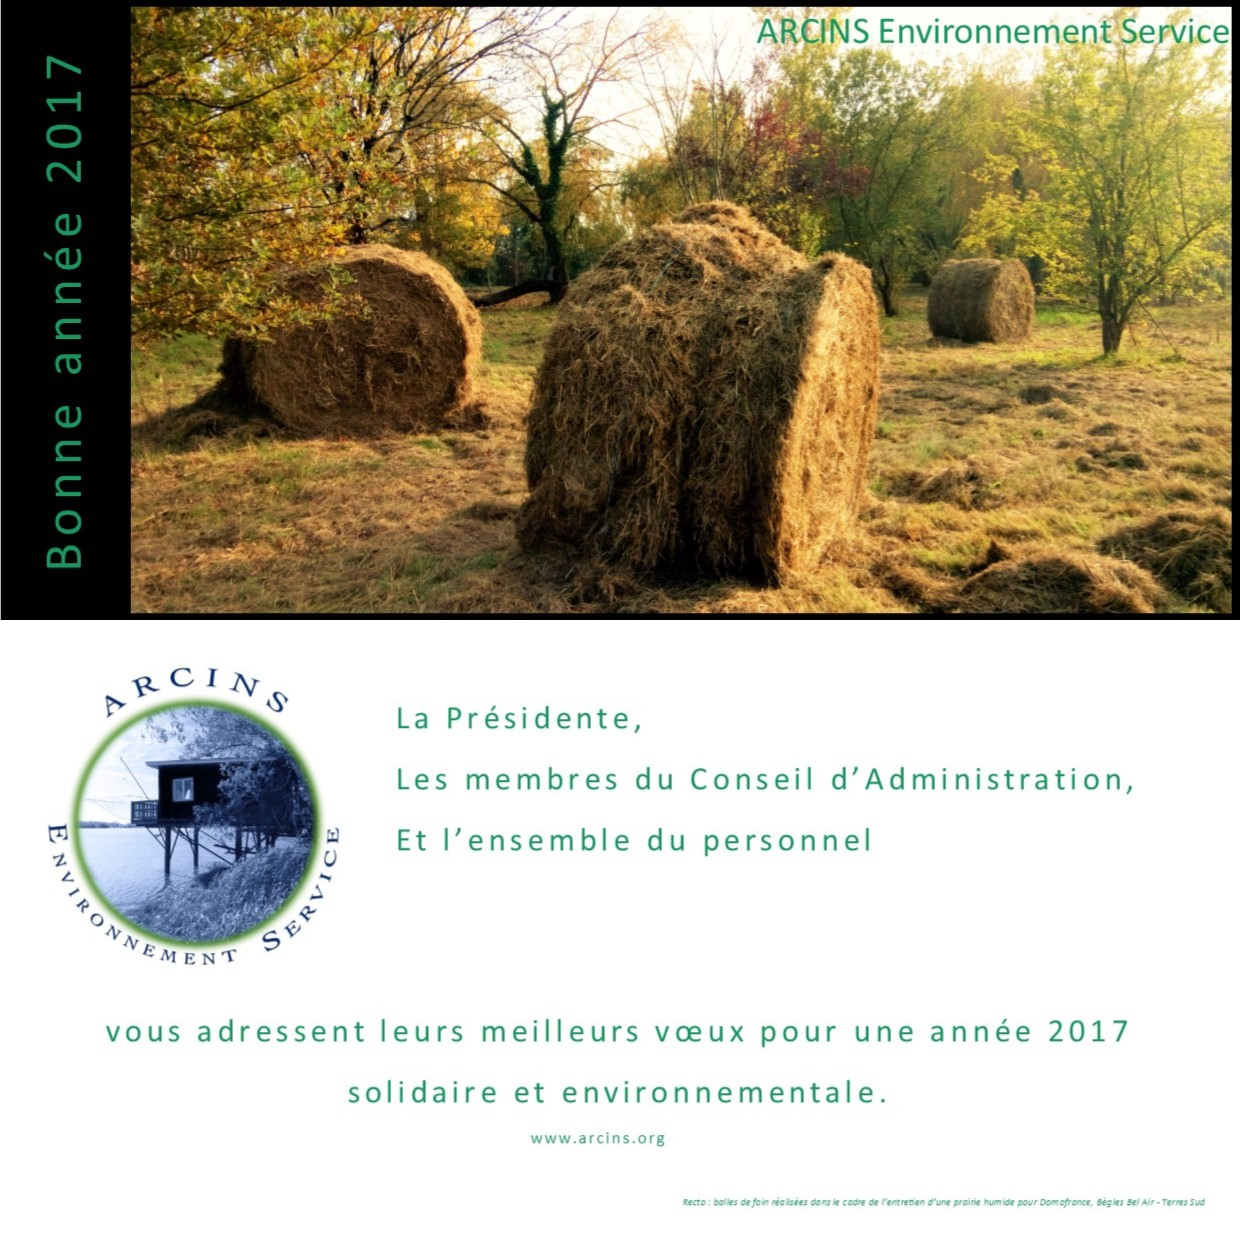 VOEUX 2017 AES